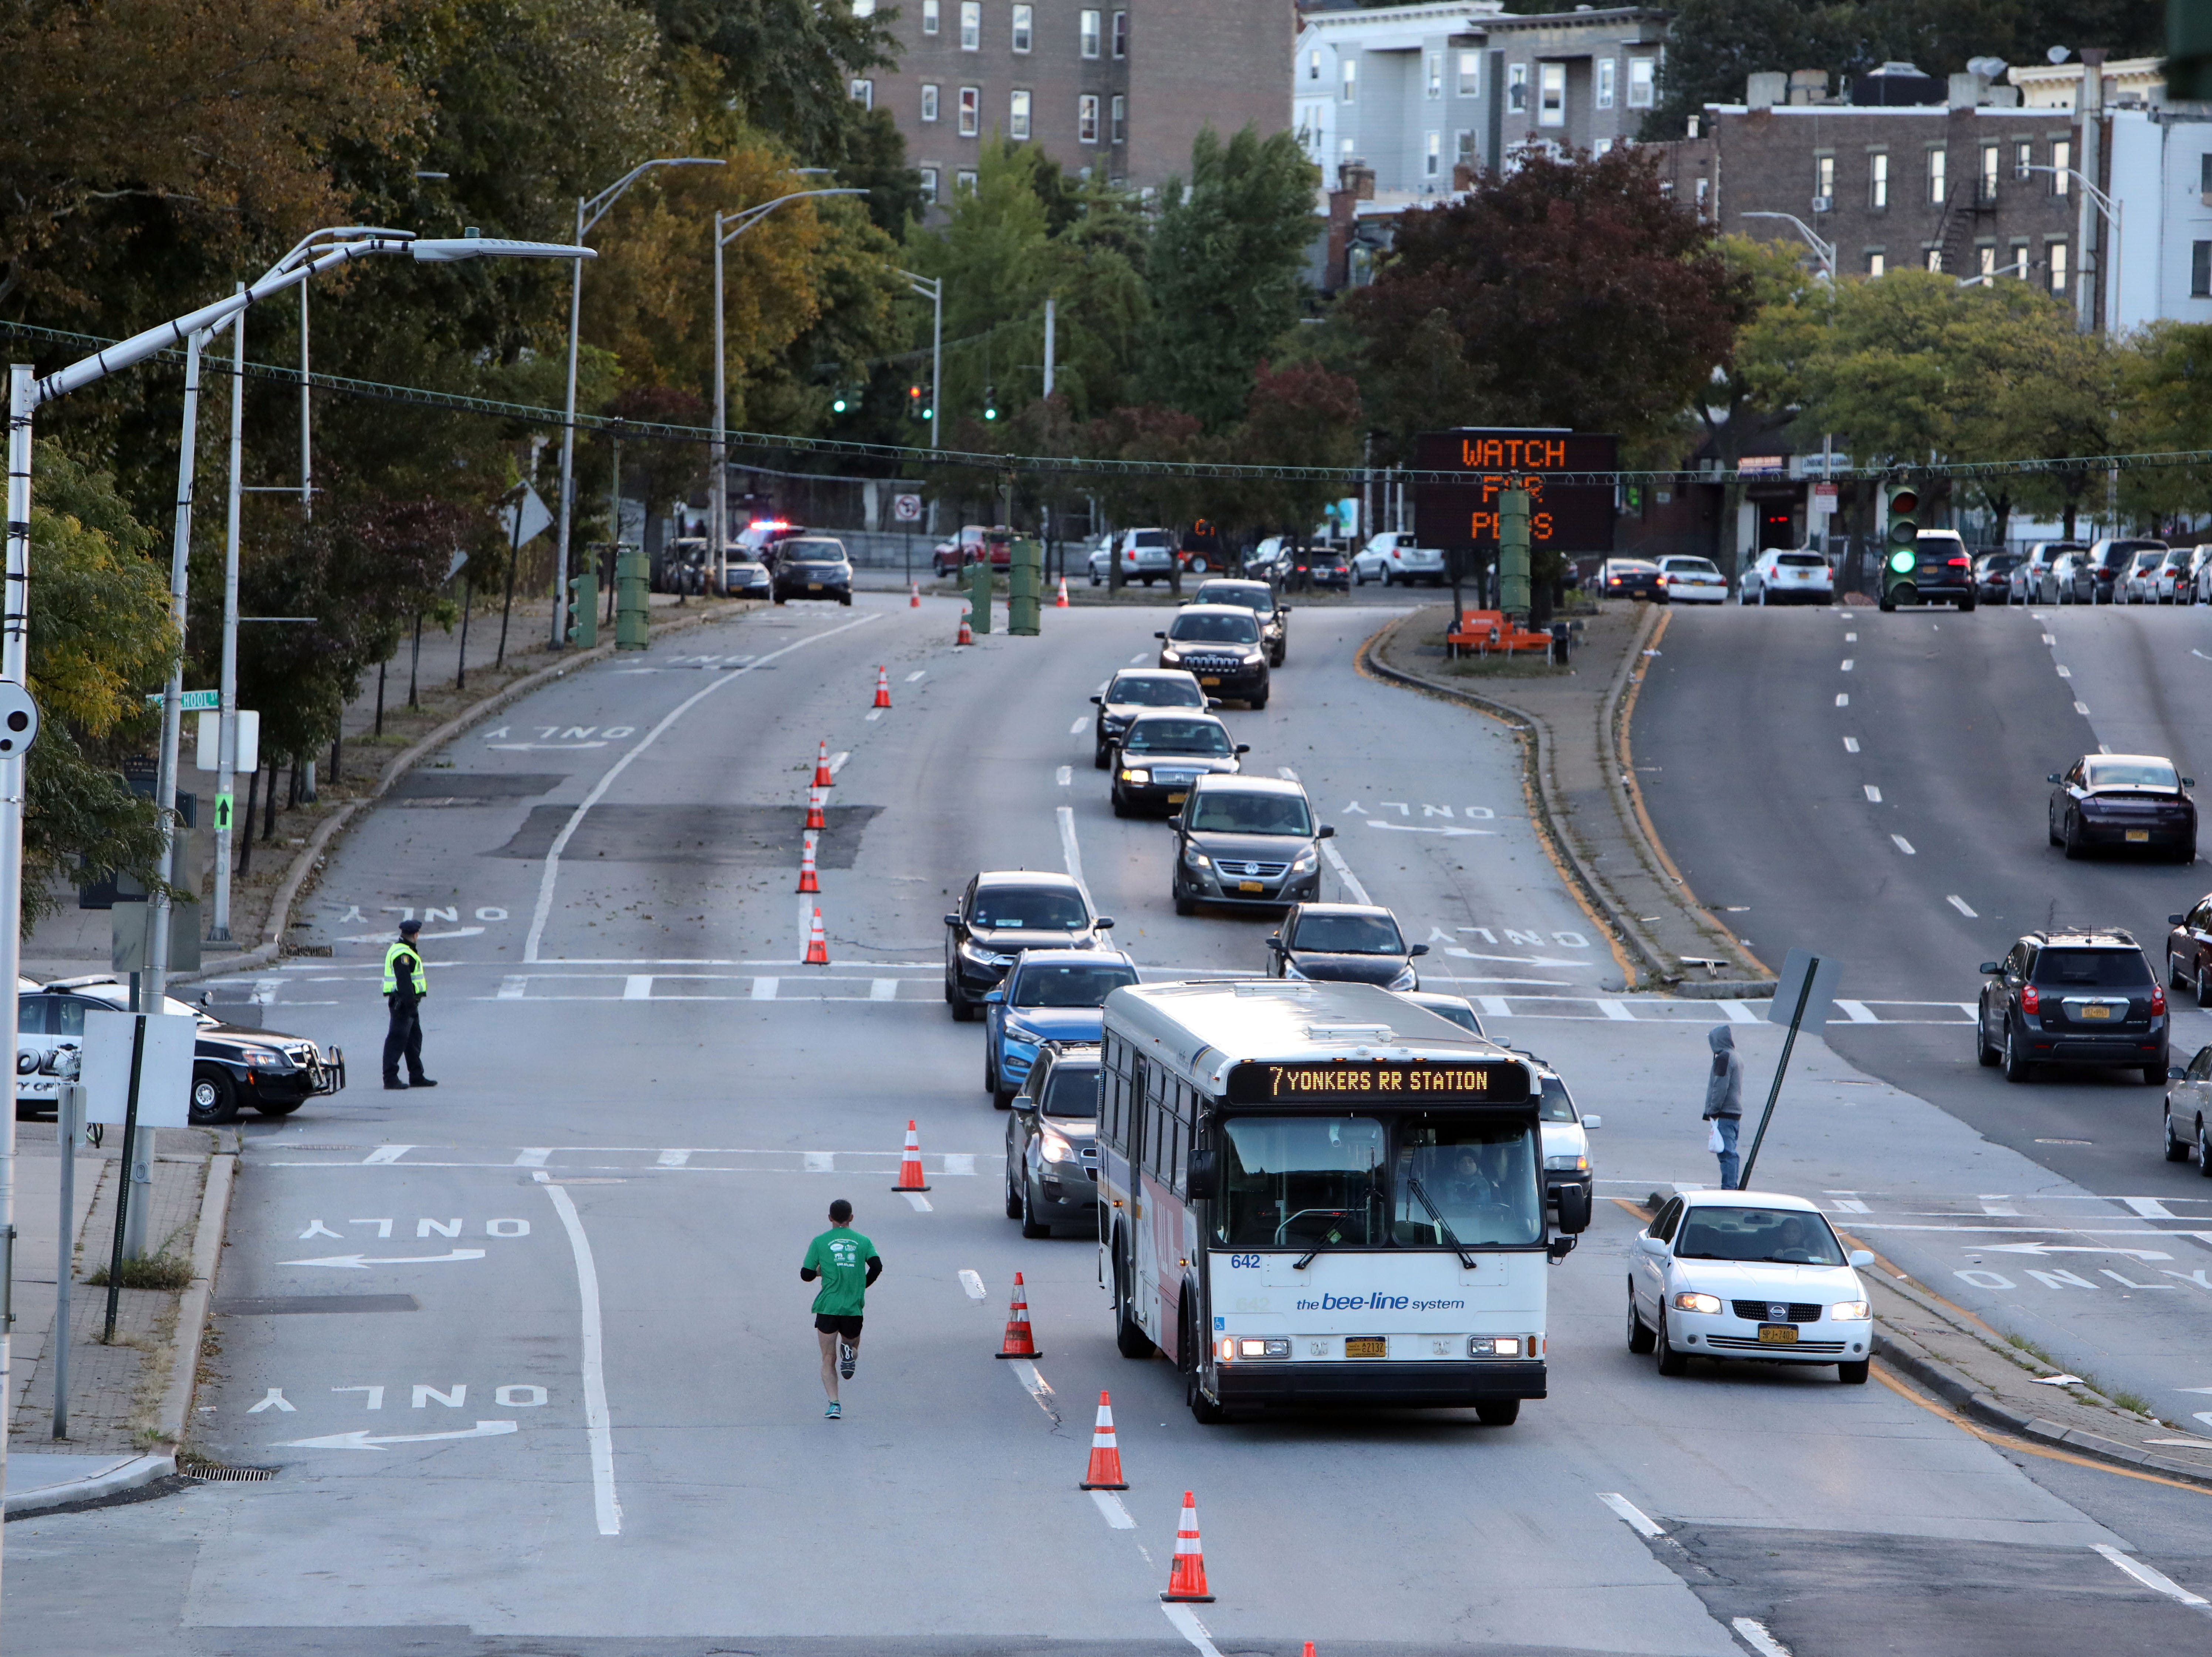 A lone runner makes his way up Nepperhan Avenue during the Yonkers Marathon, half marathon and 5k, which started at Yonkers Riverfront Library, Oct. 21, 2018.